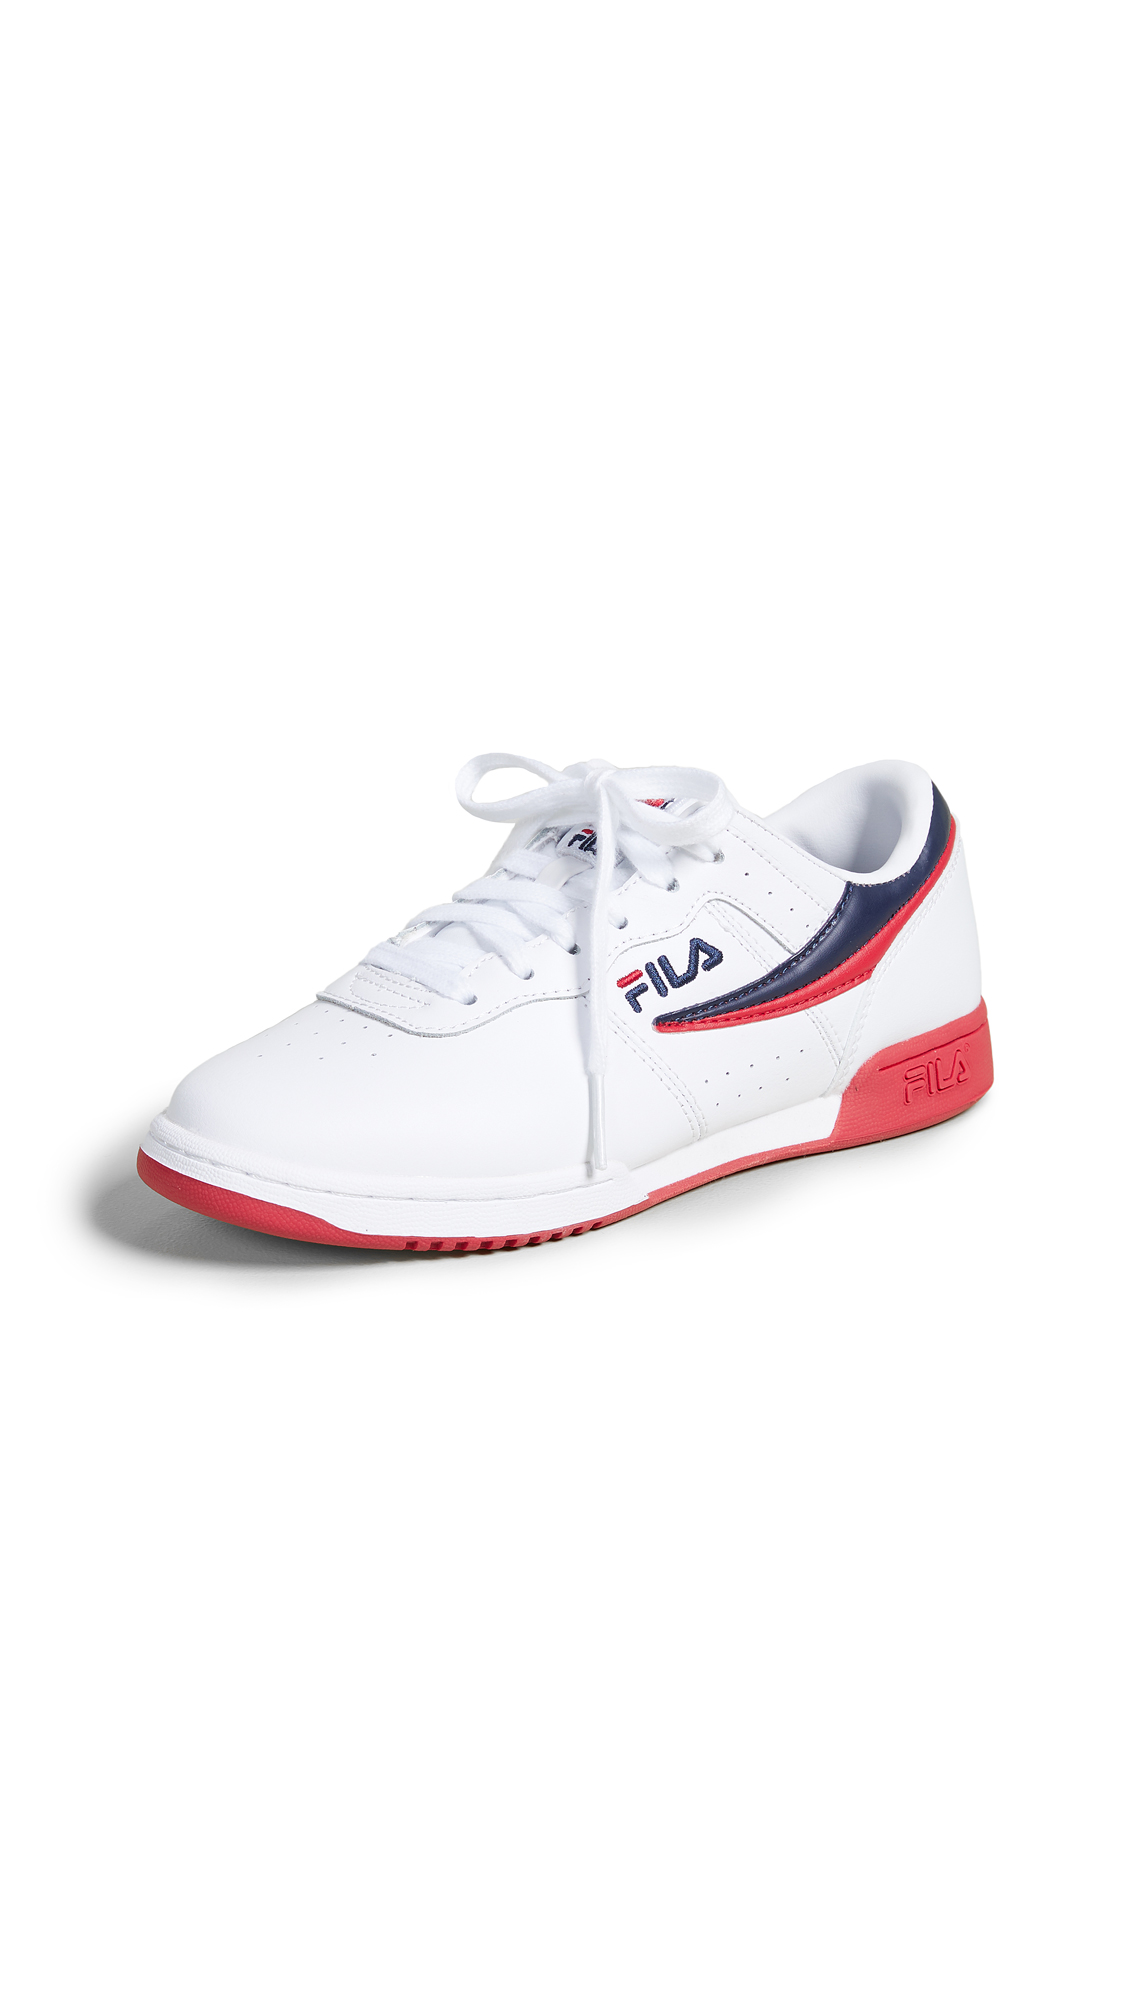 Fila Original Fitness Sneakers